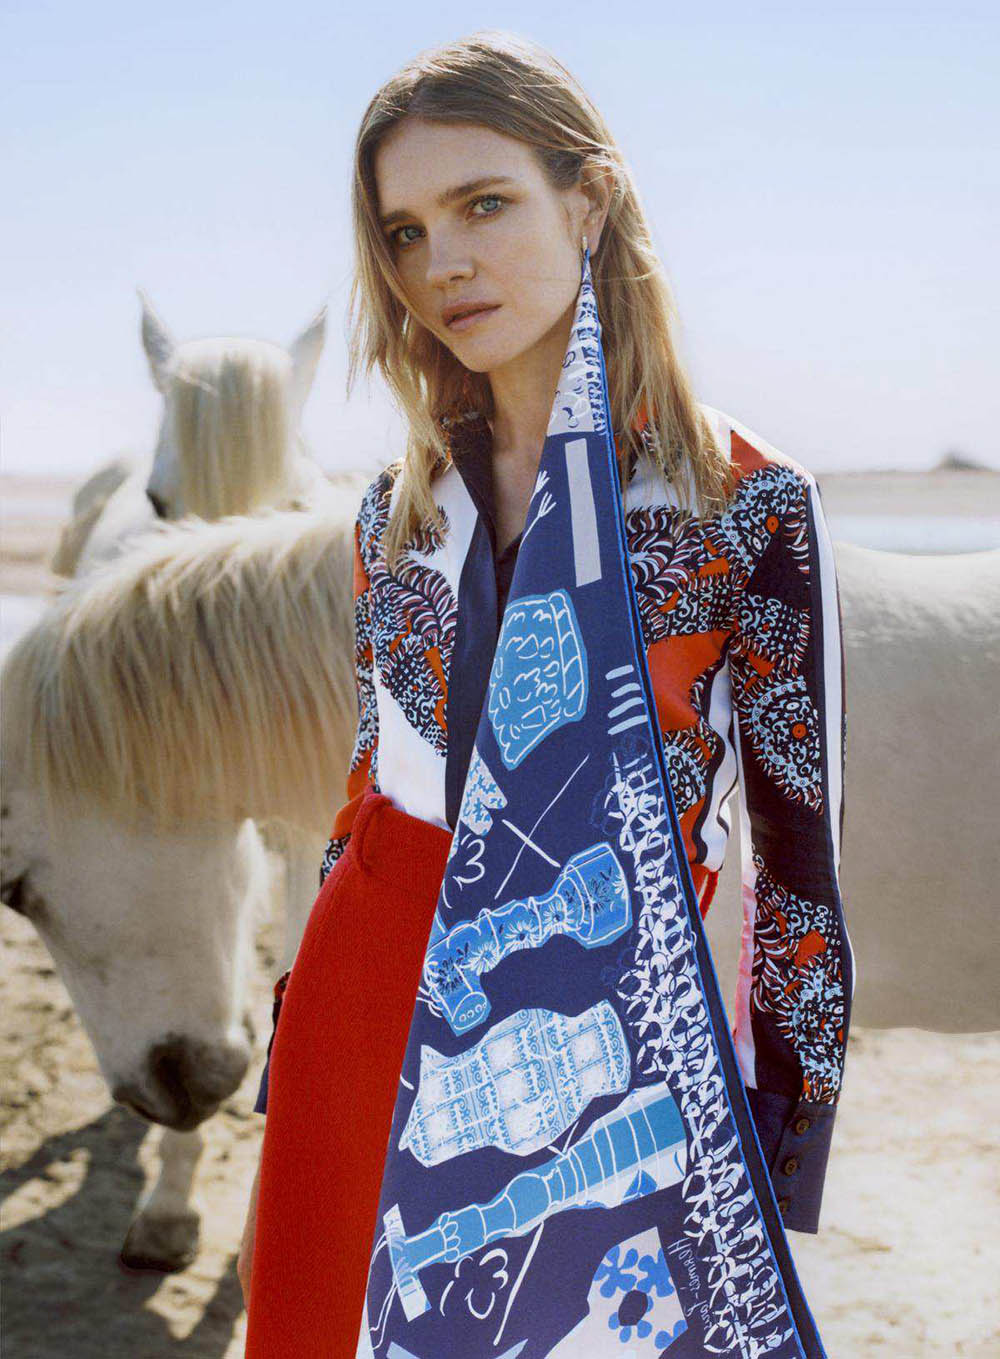 Natalia Vodianova by Zoe Ghertner for Vogue US July 2018